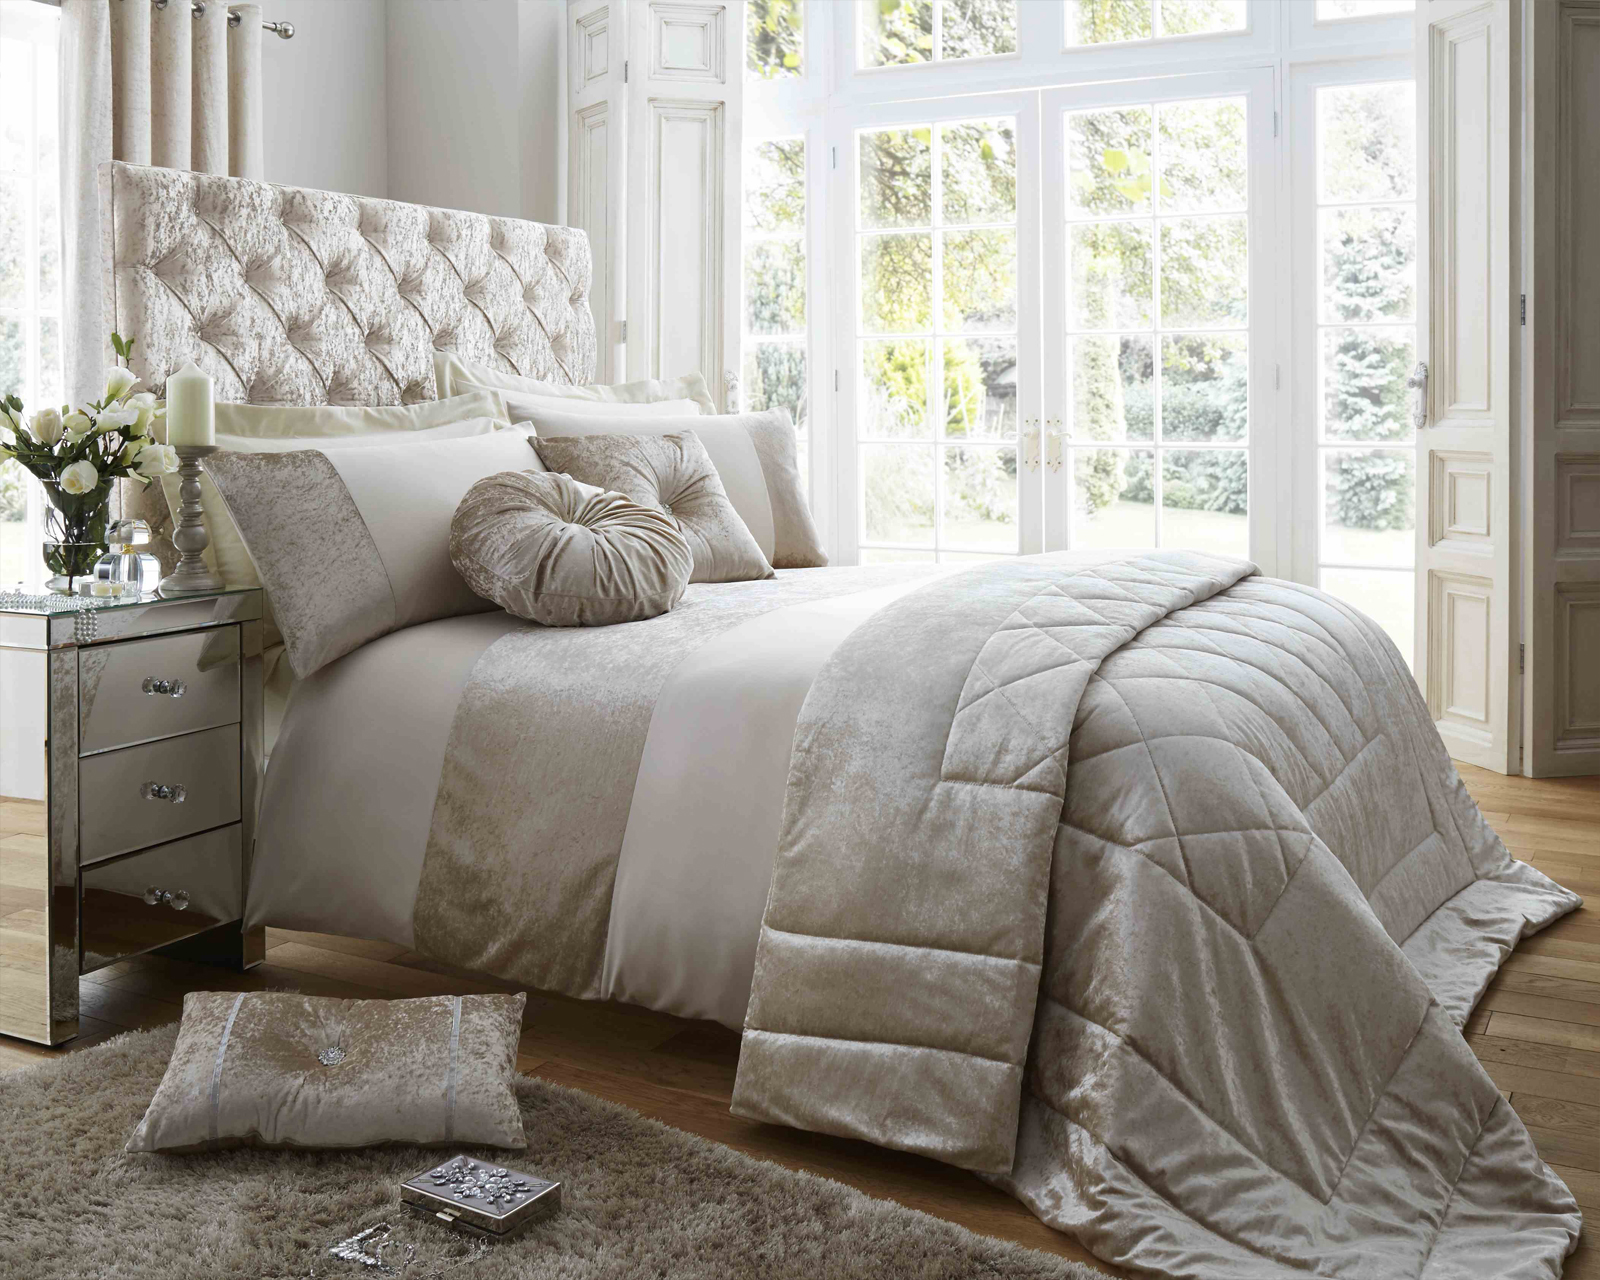 Ss Oyster Luxury Bedding Range With Crushed Velvet